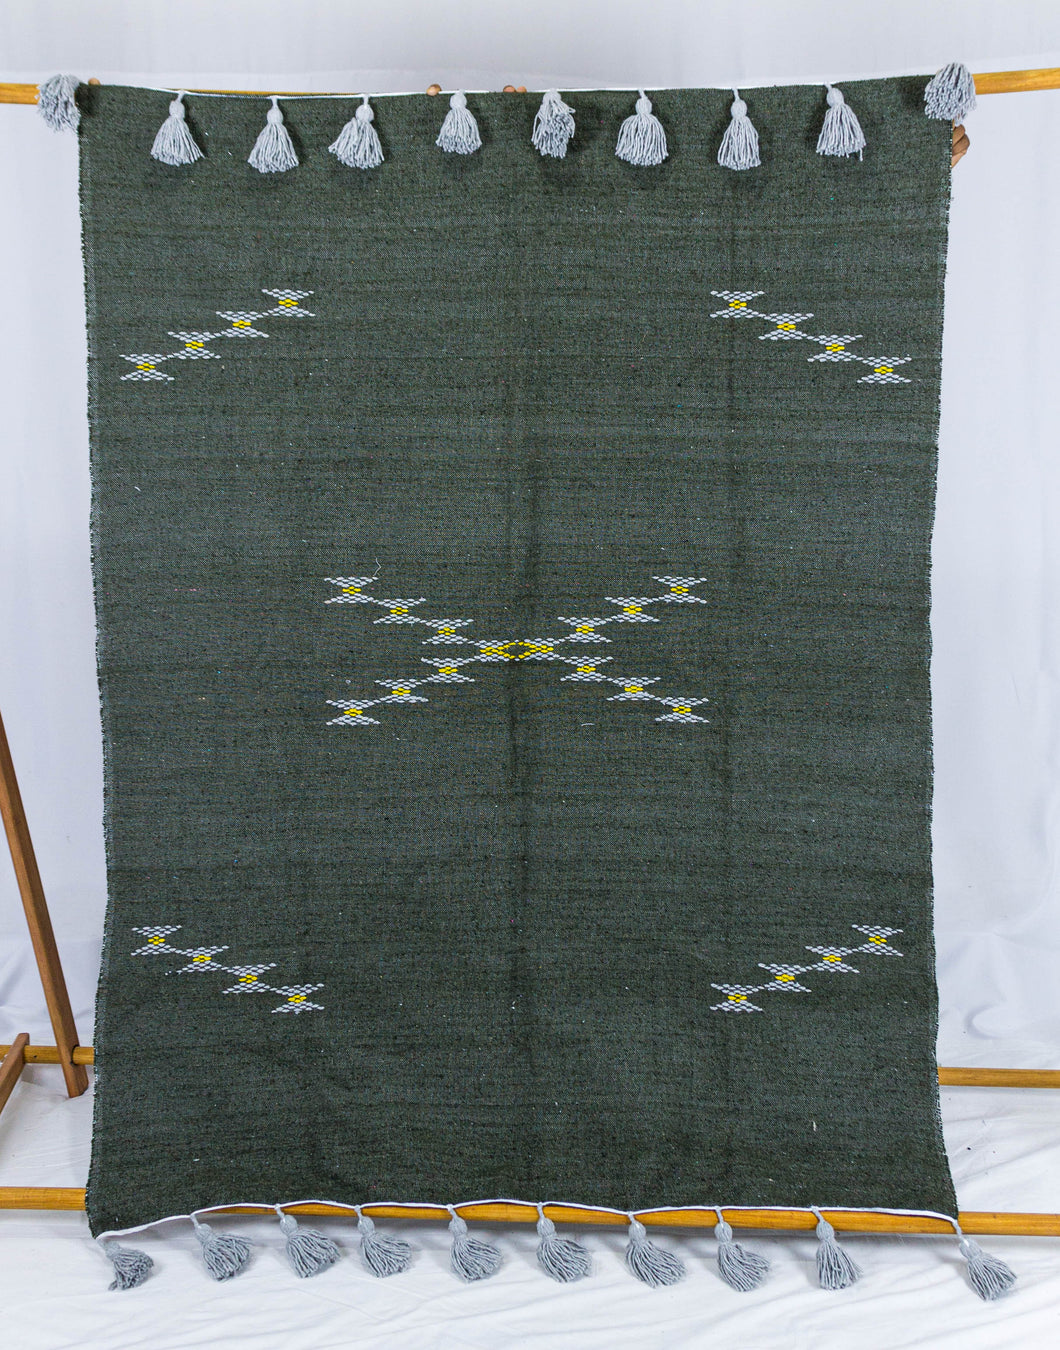 Embroidered Throw: Black Throw with Beige Cross Design and Grey Pom Poms